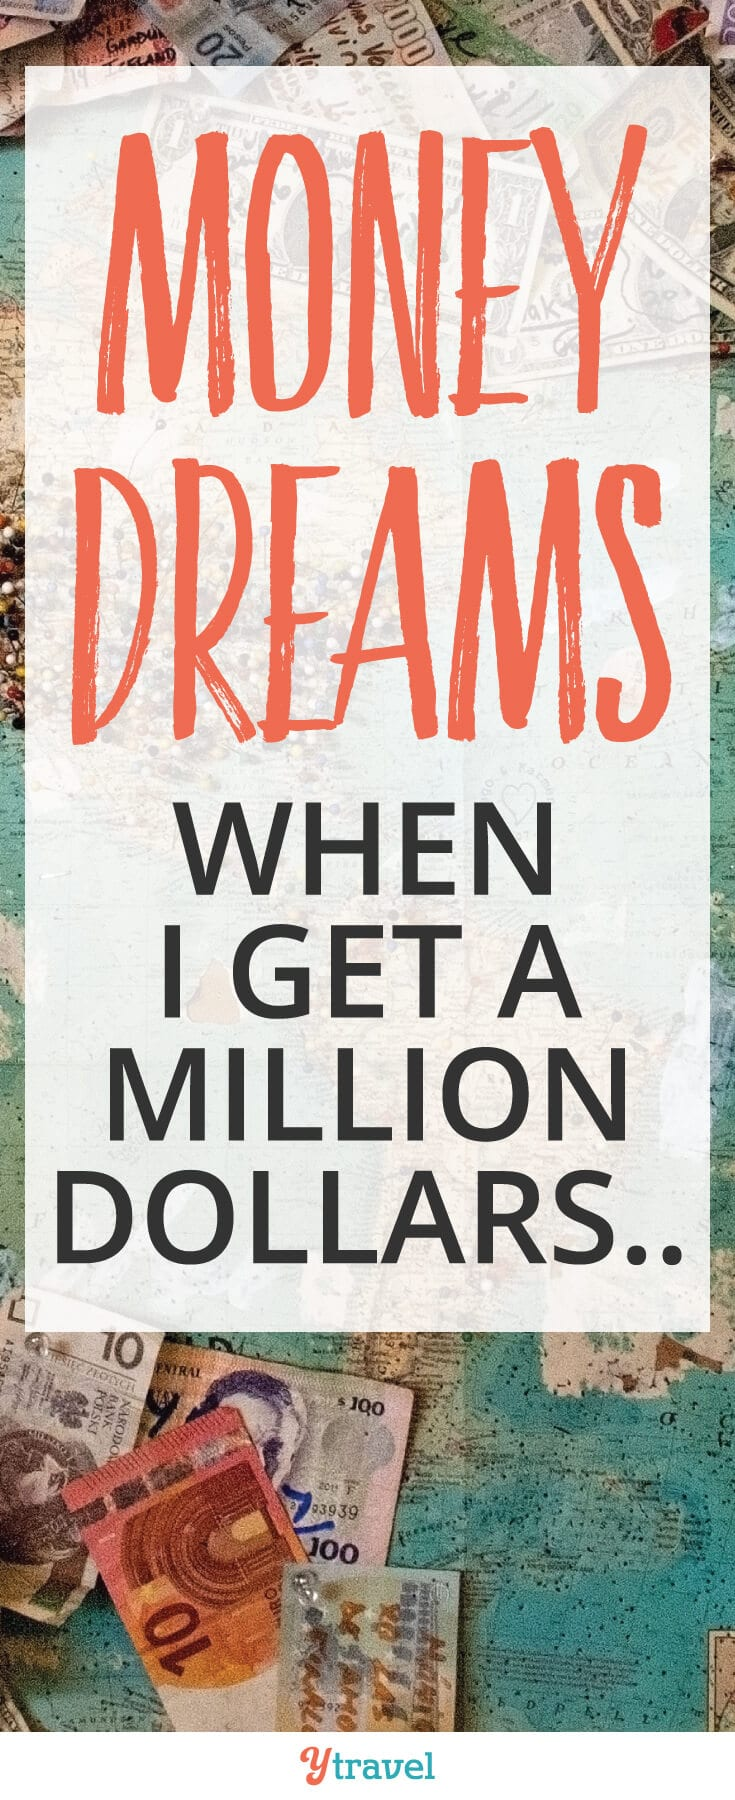 Don't let your money dreams consume your life. Take control and stop wishing for that million dollars and start living.